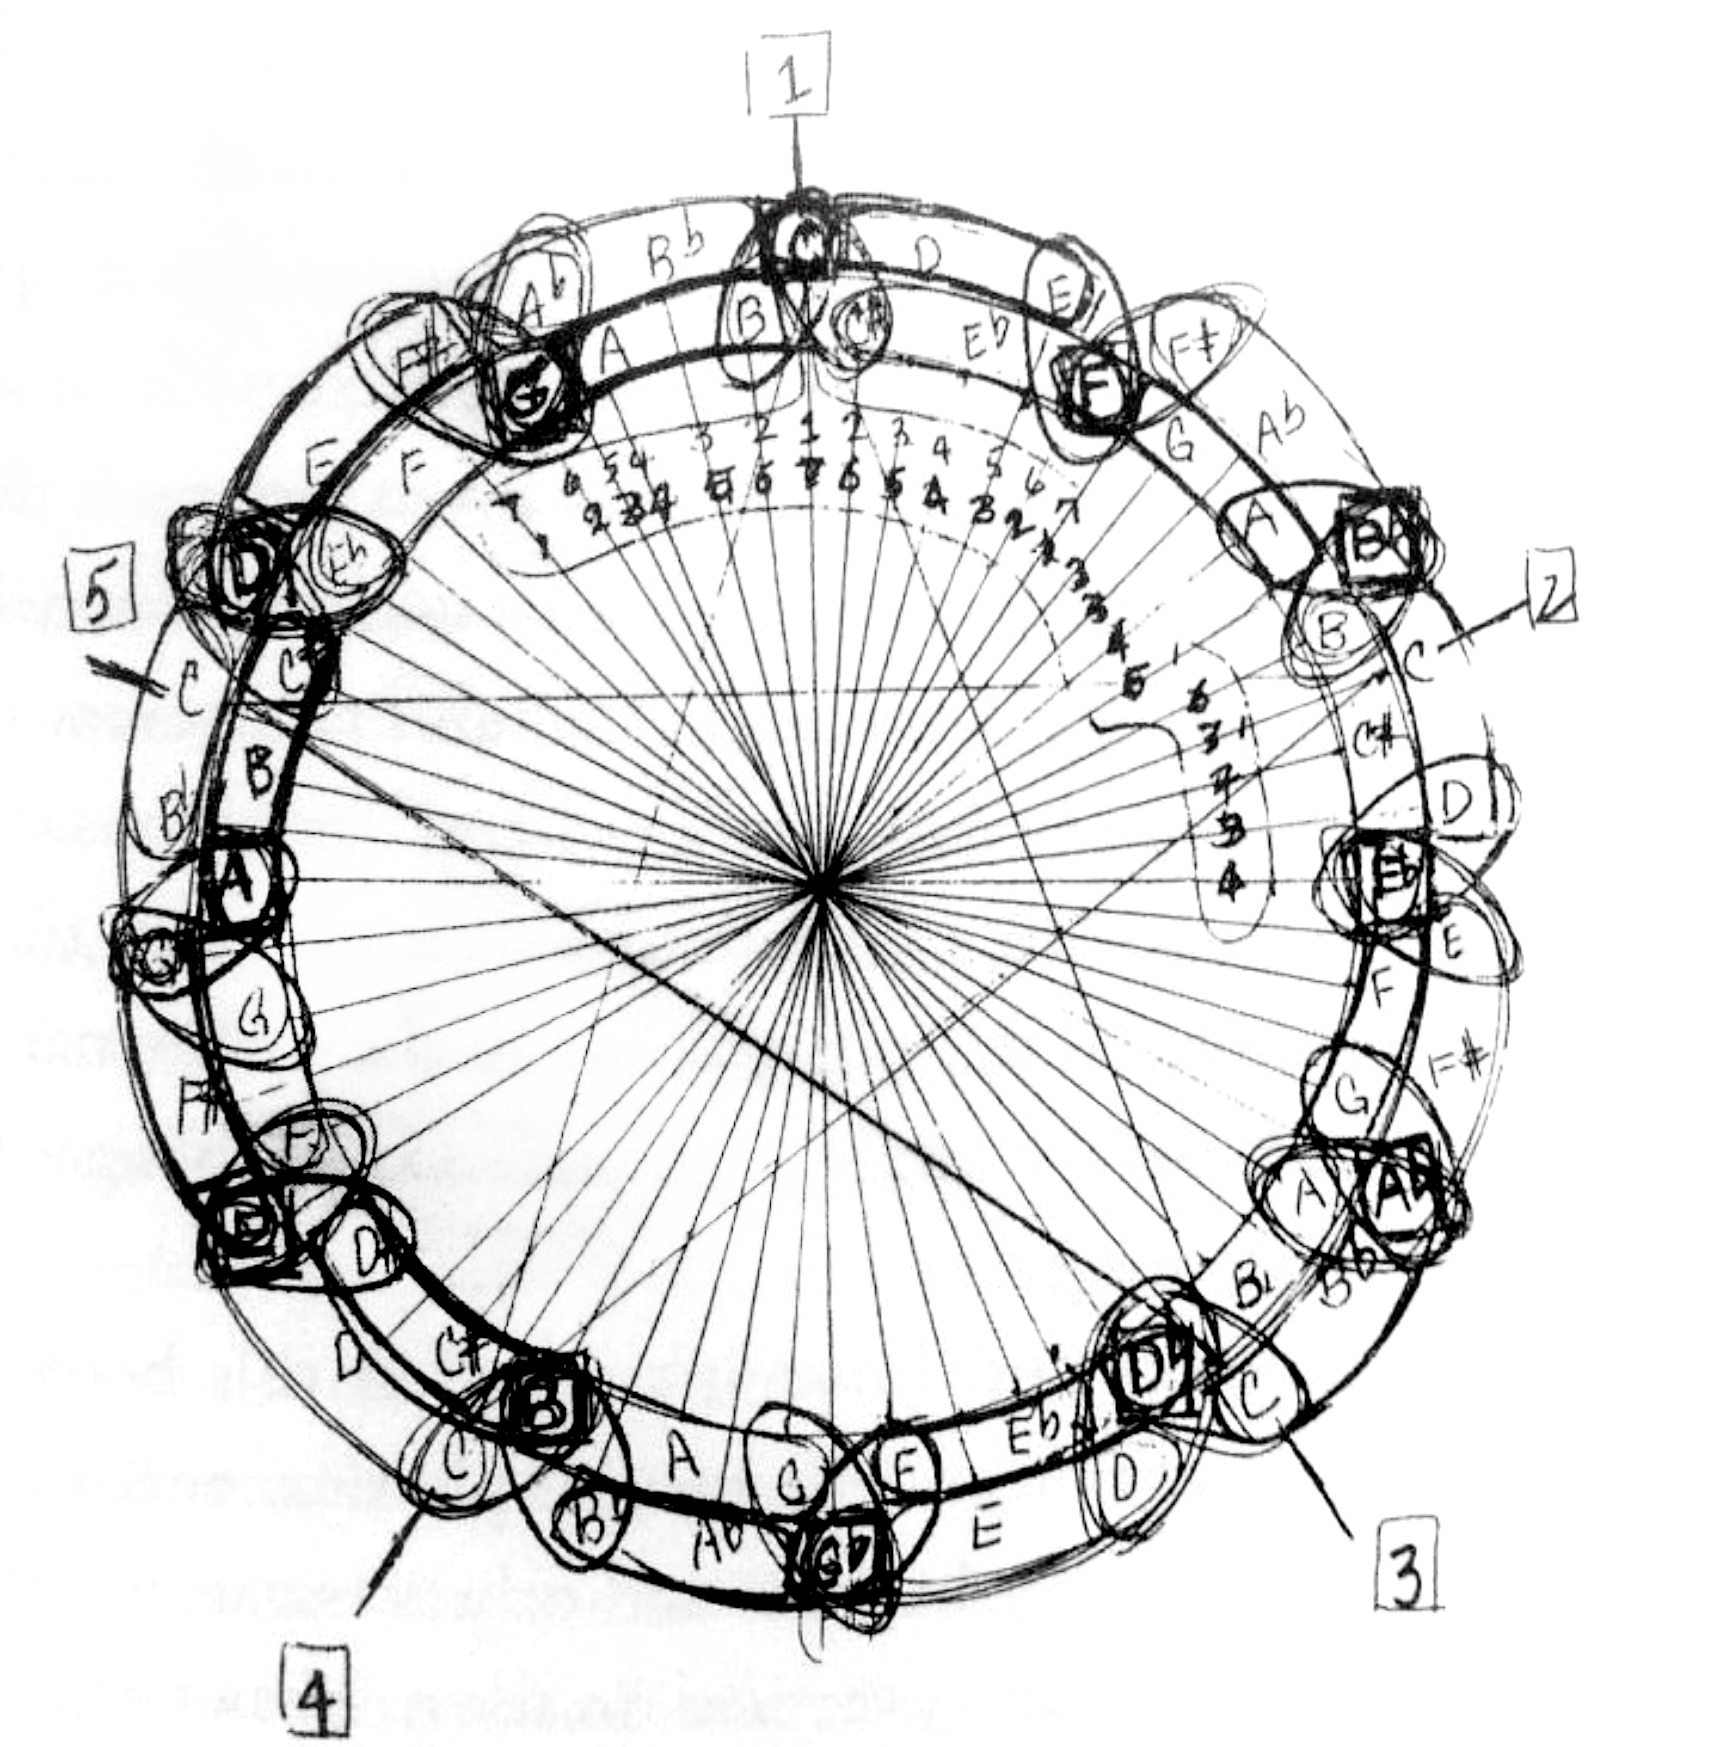 John Coltrane S Drawing Of The Mathematical Soul Of Music